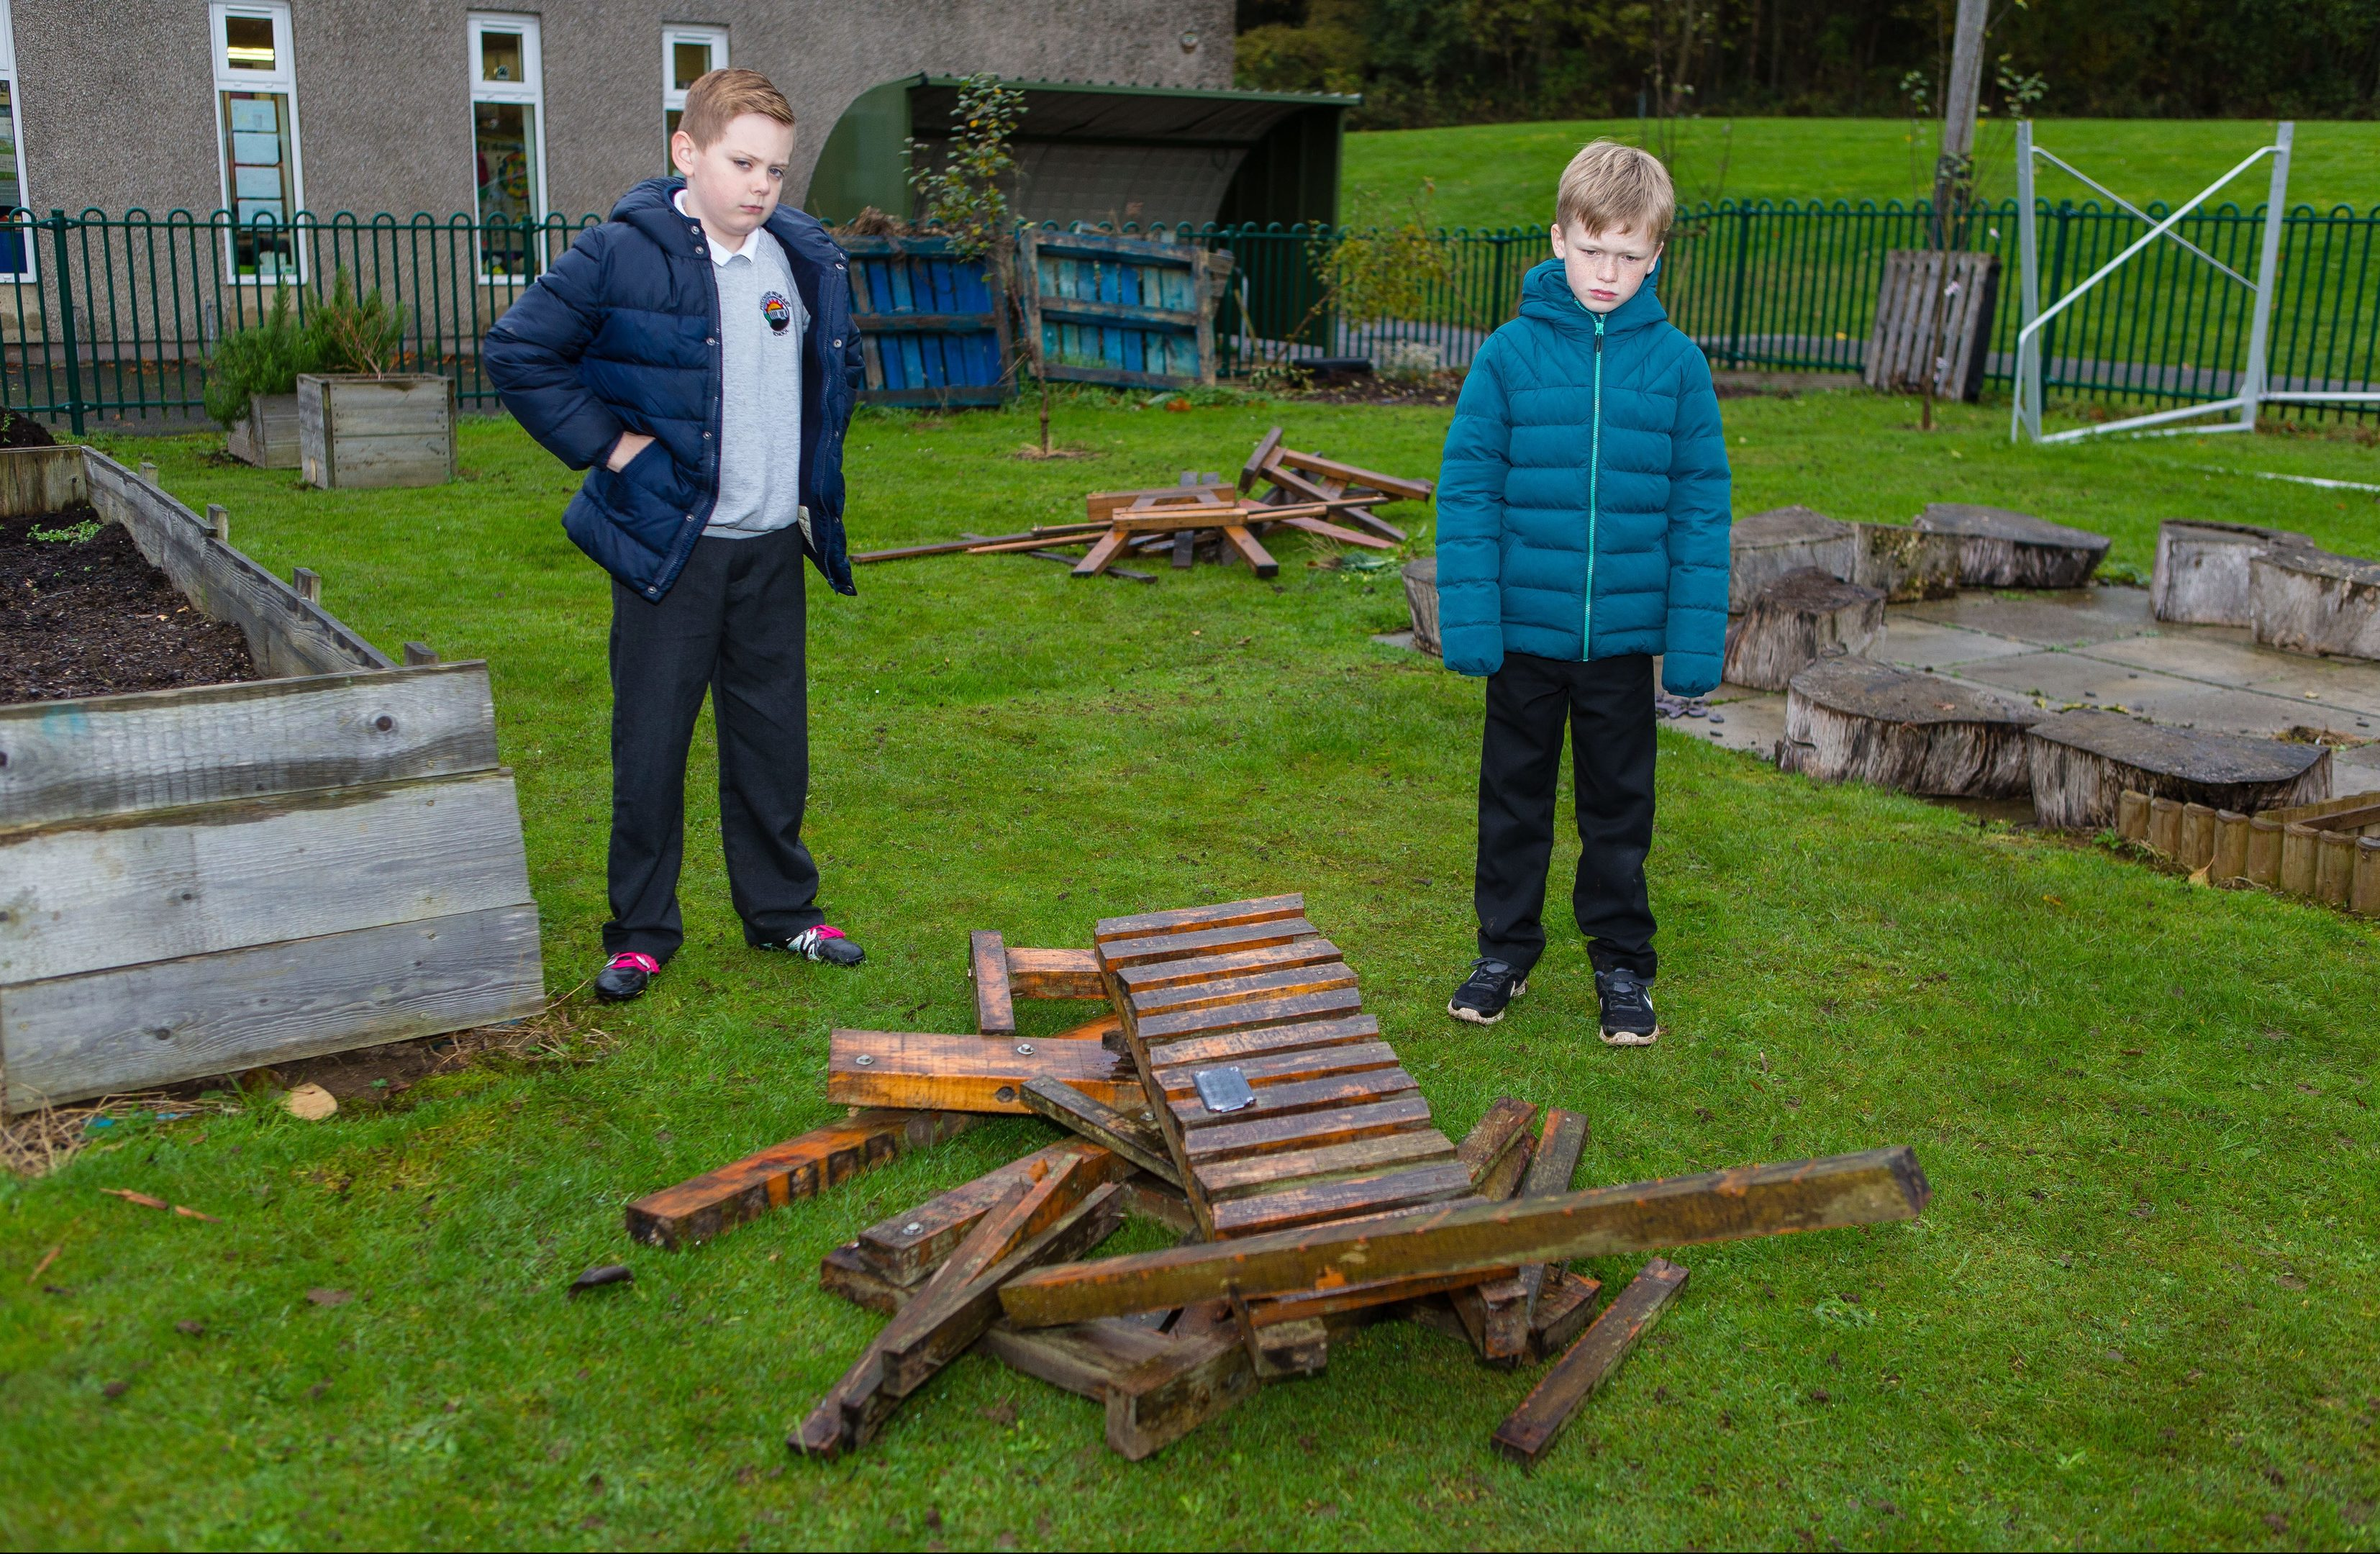 Pupils were devastated to find their communal garden destroyed by vandals earlier this month. Pictured are Sean Gilles (10) and Makenzie McLellan (9) in the gardens where the vandalism ruined all their hard work.